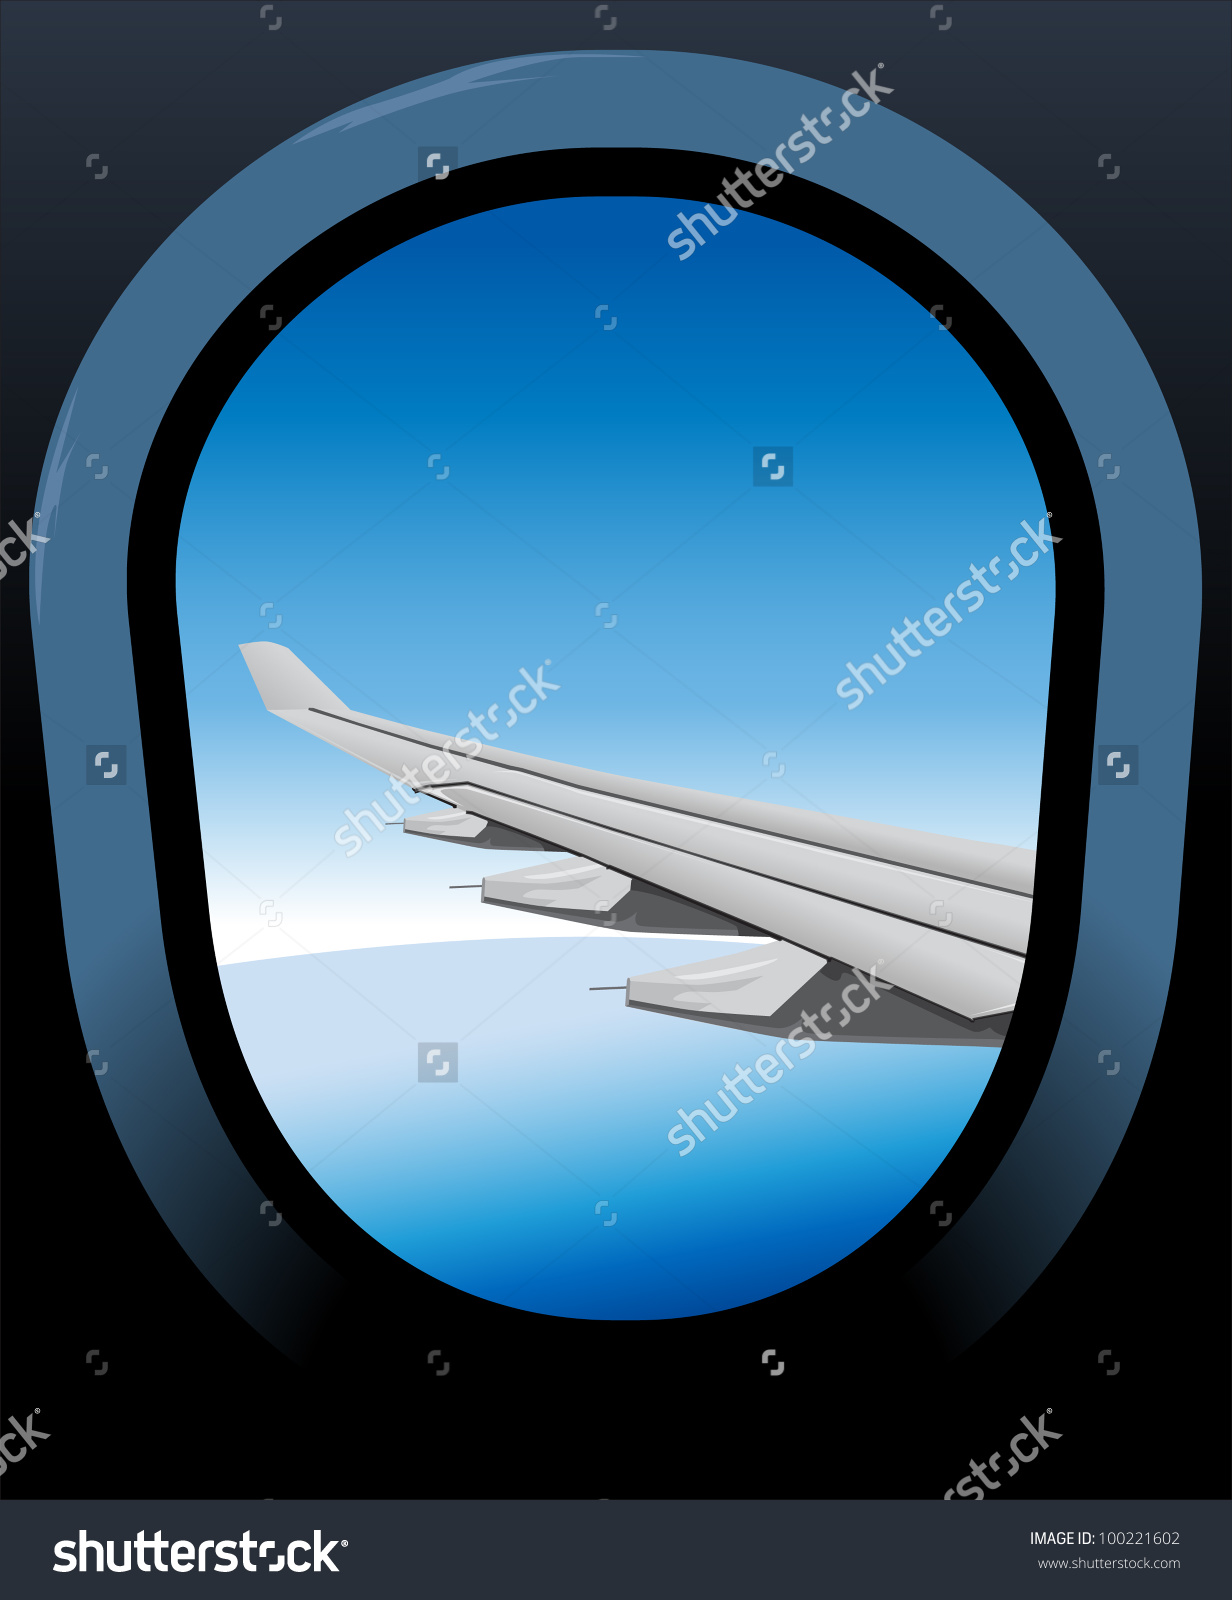 Airplane window clipart #14